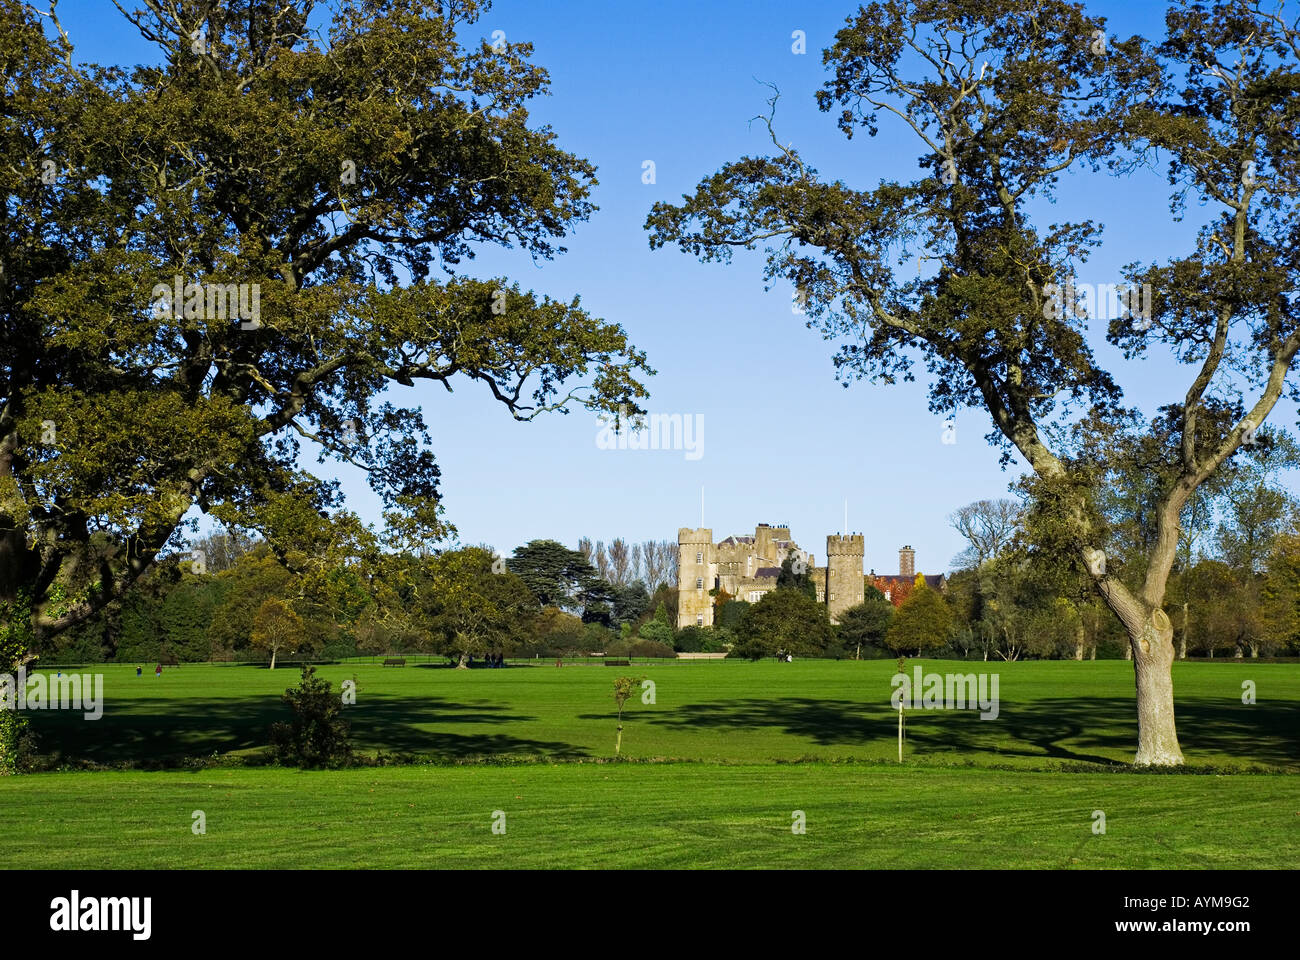 Malahide Castle, a stately home open to the public, set in parkland in north county Dublin, Ireland - Stock Image